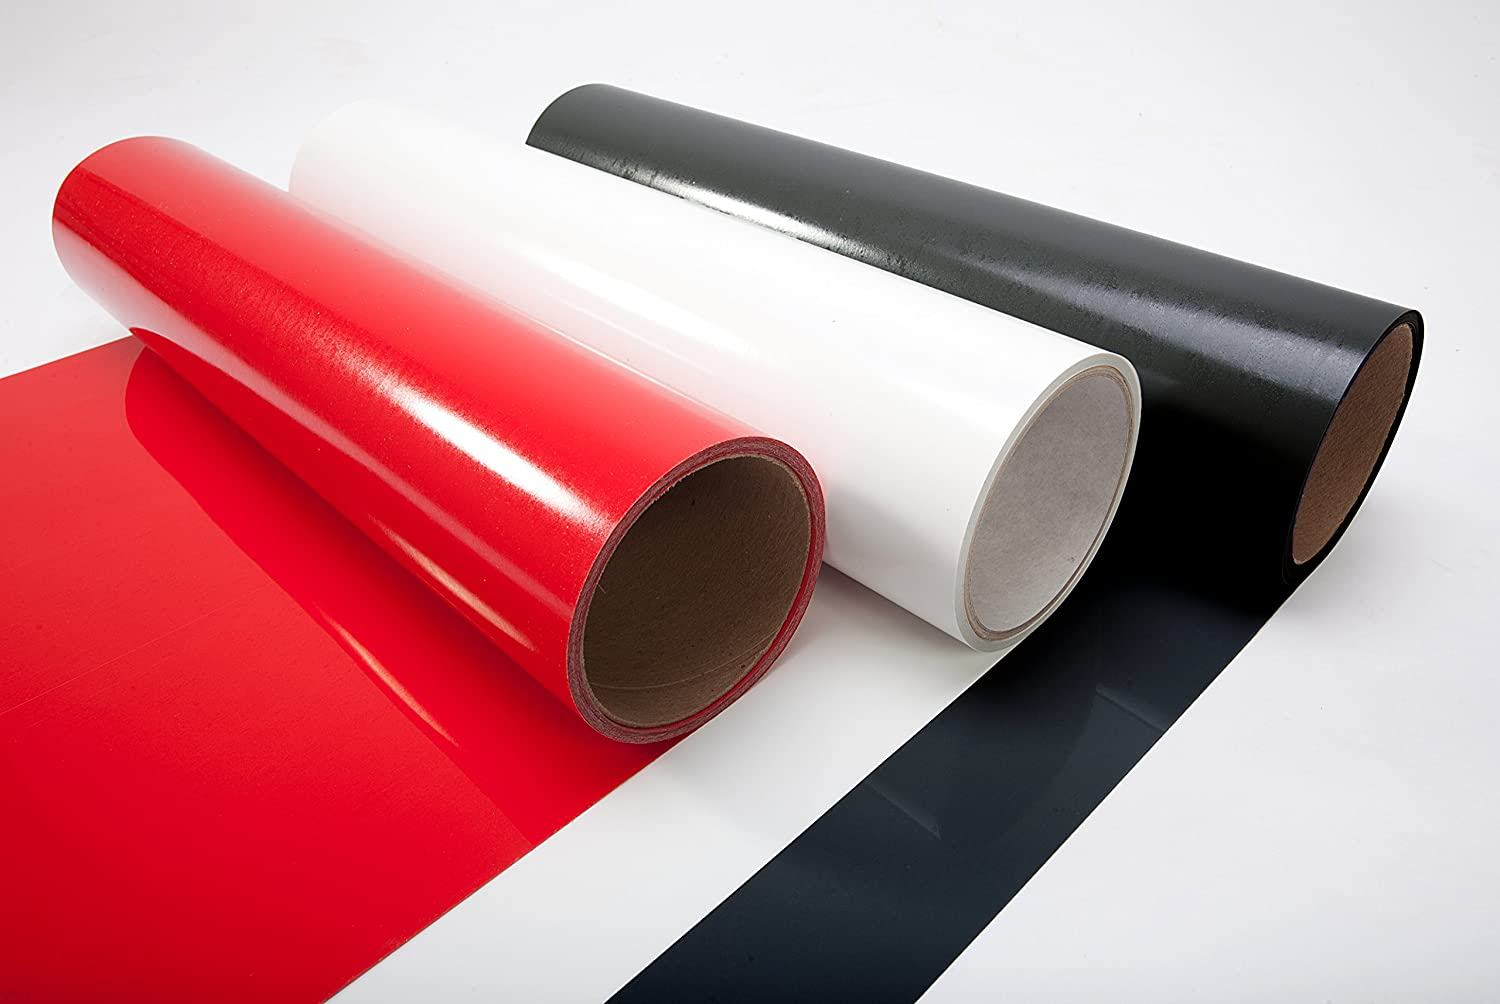 Black,White,red ORACAL 651 Multi-Color Vinyl 1ft x 5ft Roll Starter Kit Bundle for Cricut 3 Rolls + Transfer Paper Silhouette /& Cameo